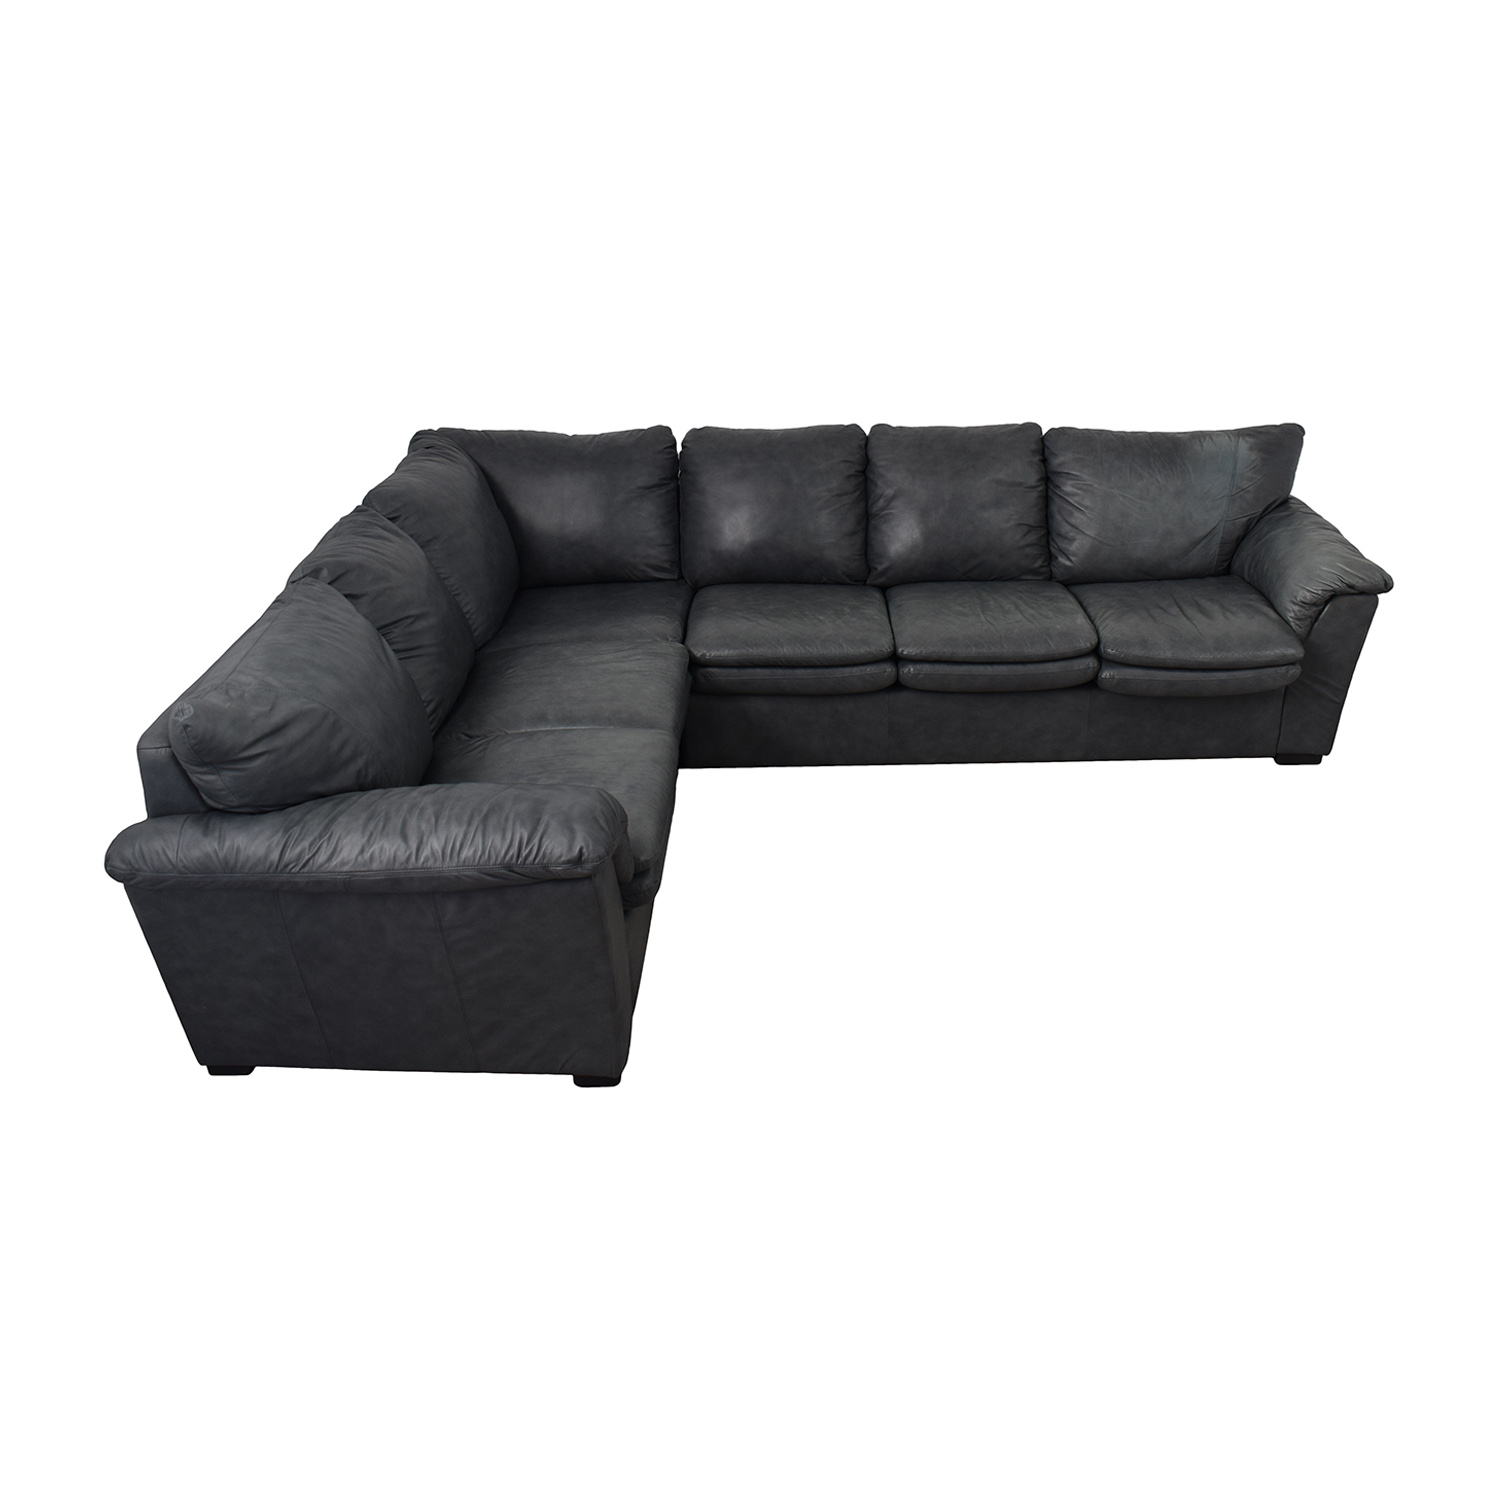 Jaymar Furniture Charcoal Leather L-Shaped Sectional sale